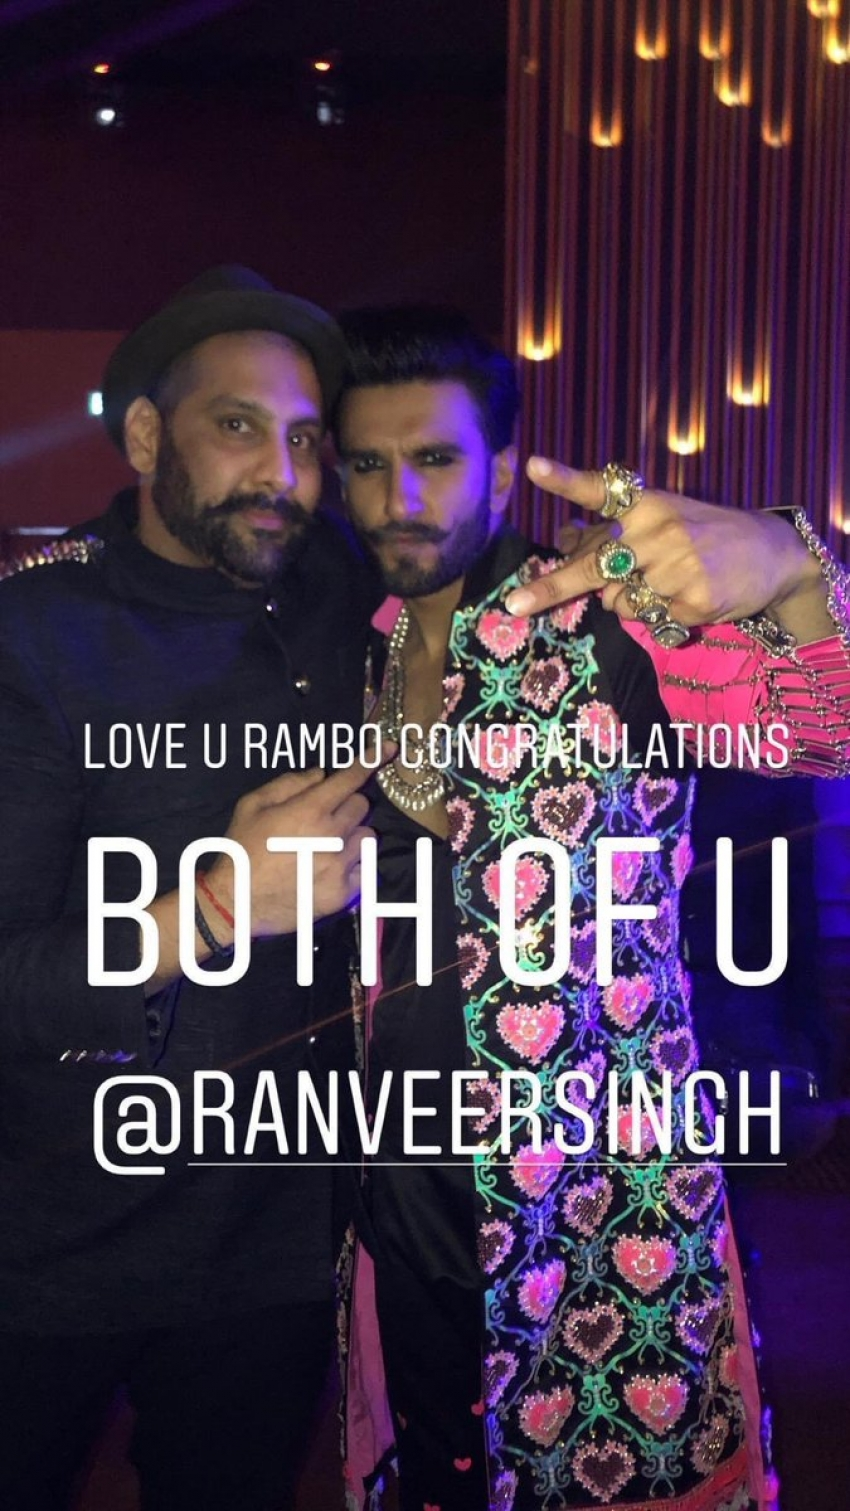 Ranveer Singh Sister Throws Dinner Party For Newly Wed Couple Photos